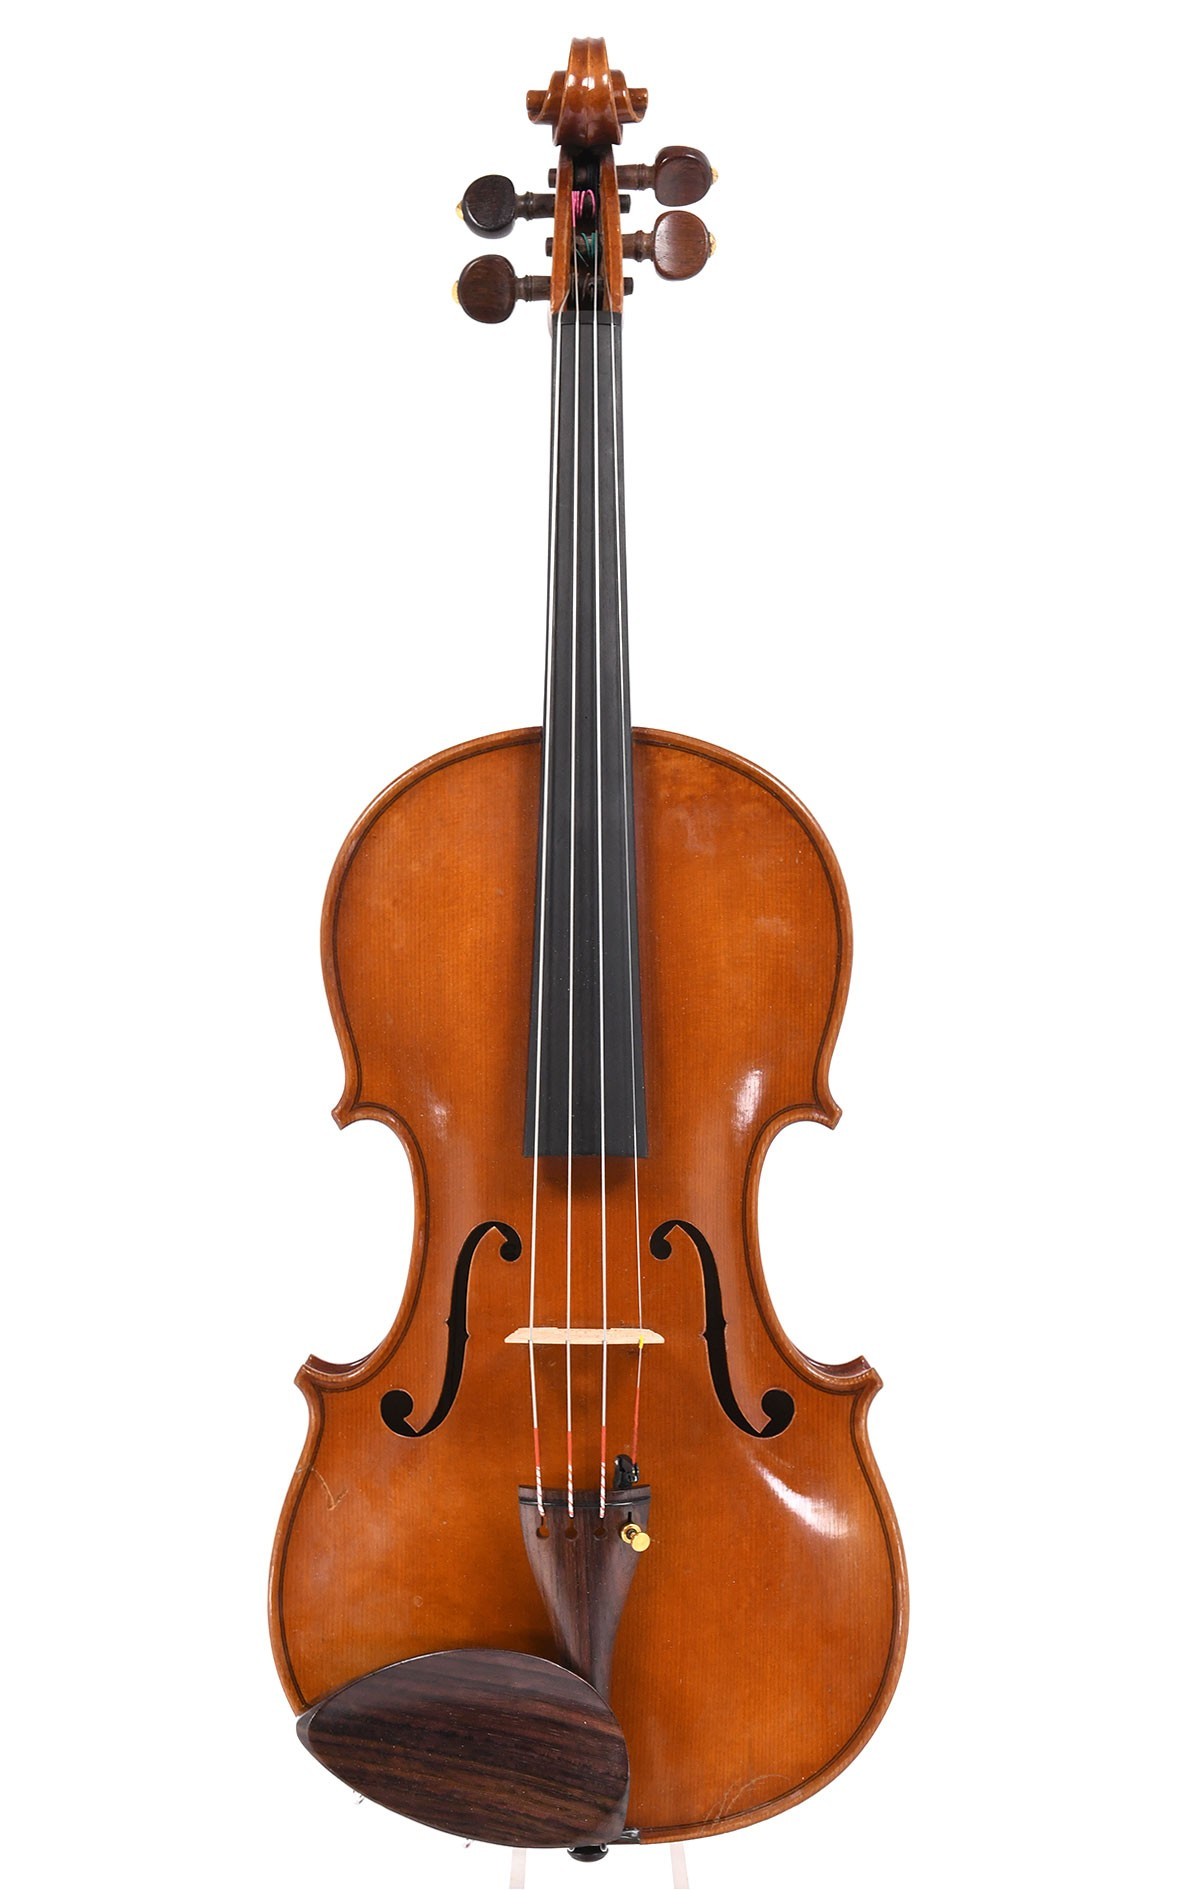 Old French violin by Collin-Mezin fils, Mirecourt